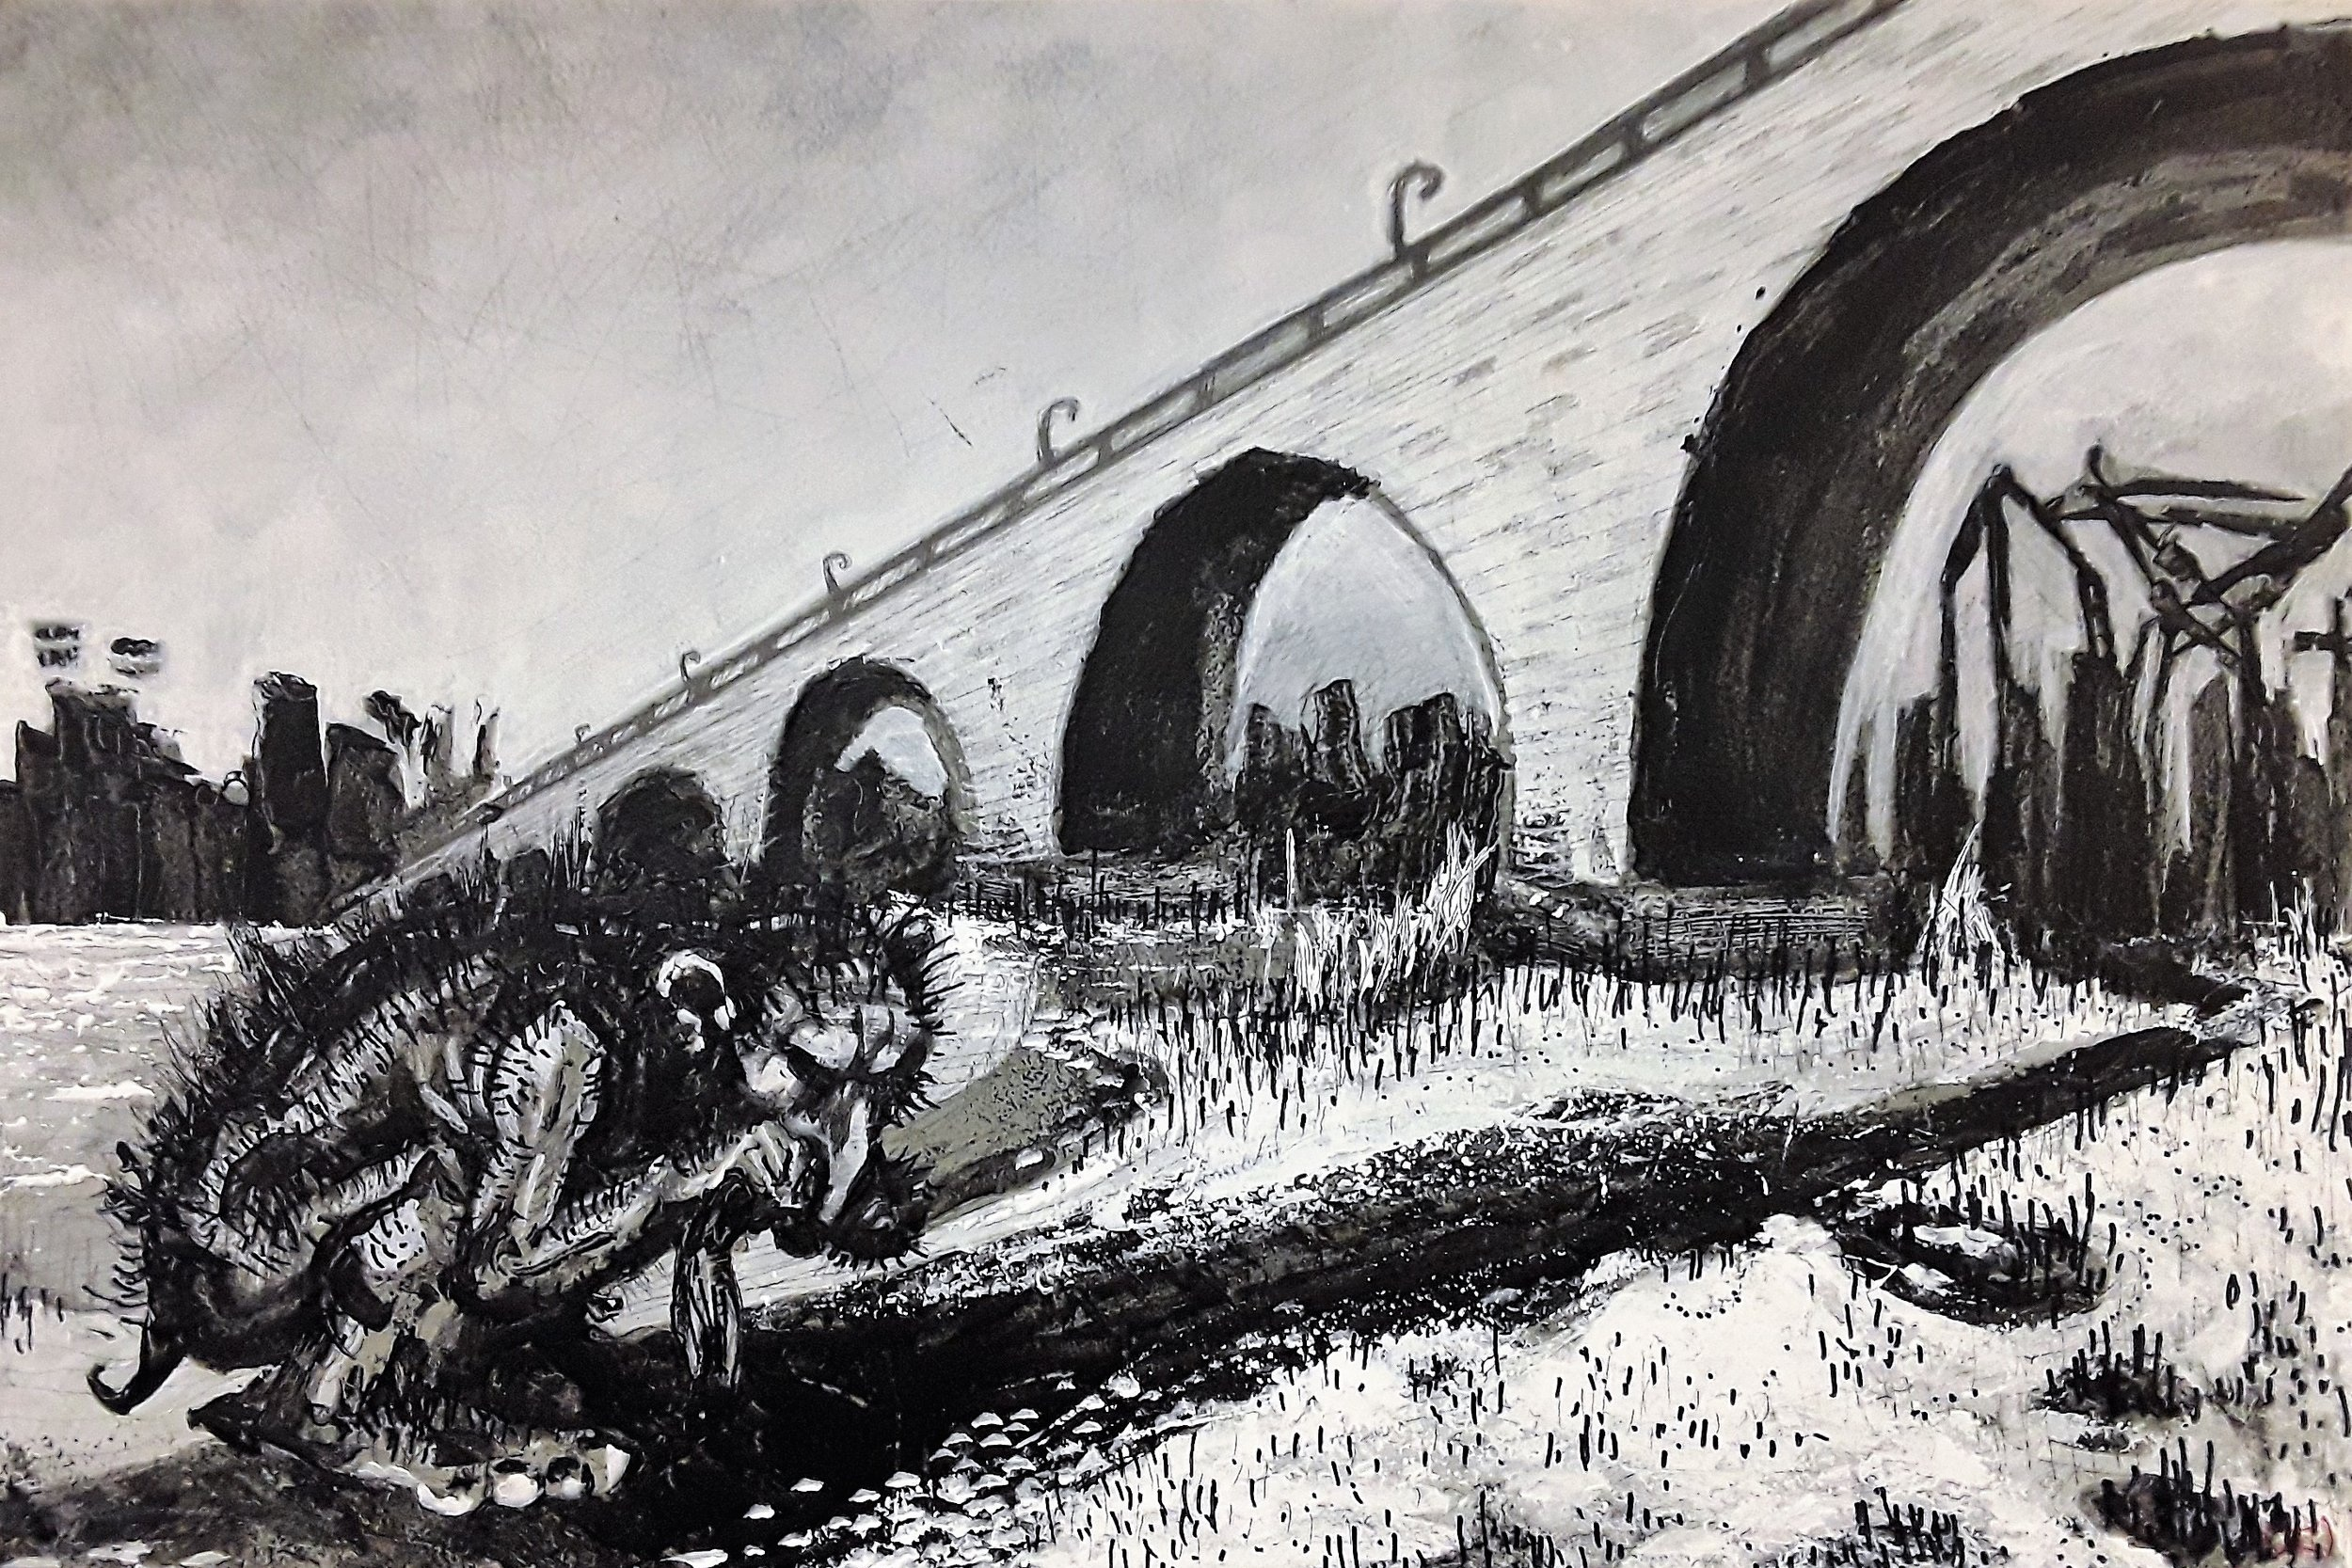 A Troll crouches to eat a fish near the Stone Arch Bridge, crossing over the great Mississippi river.